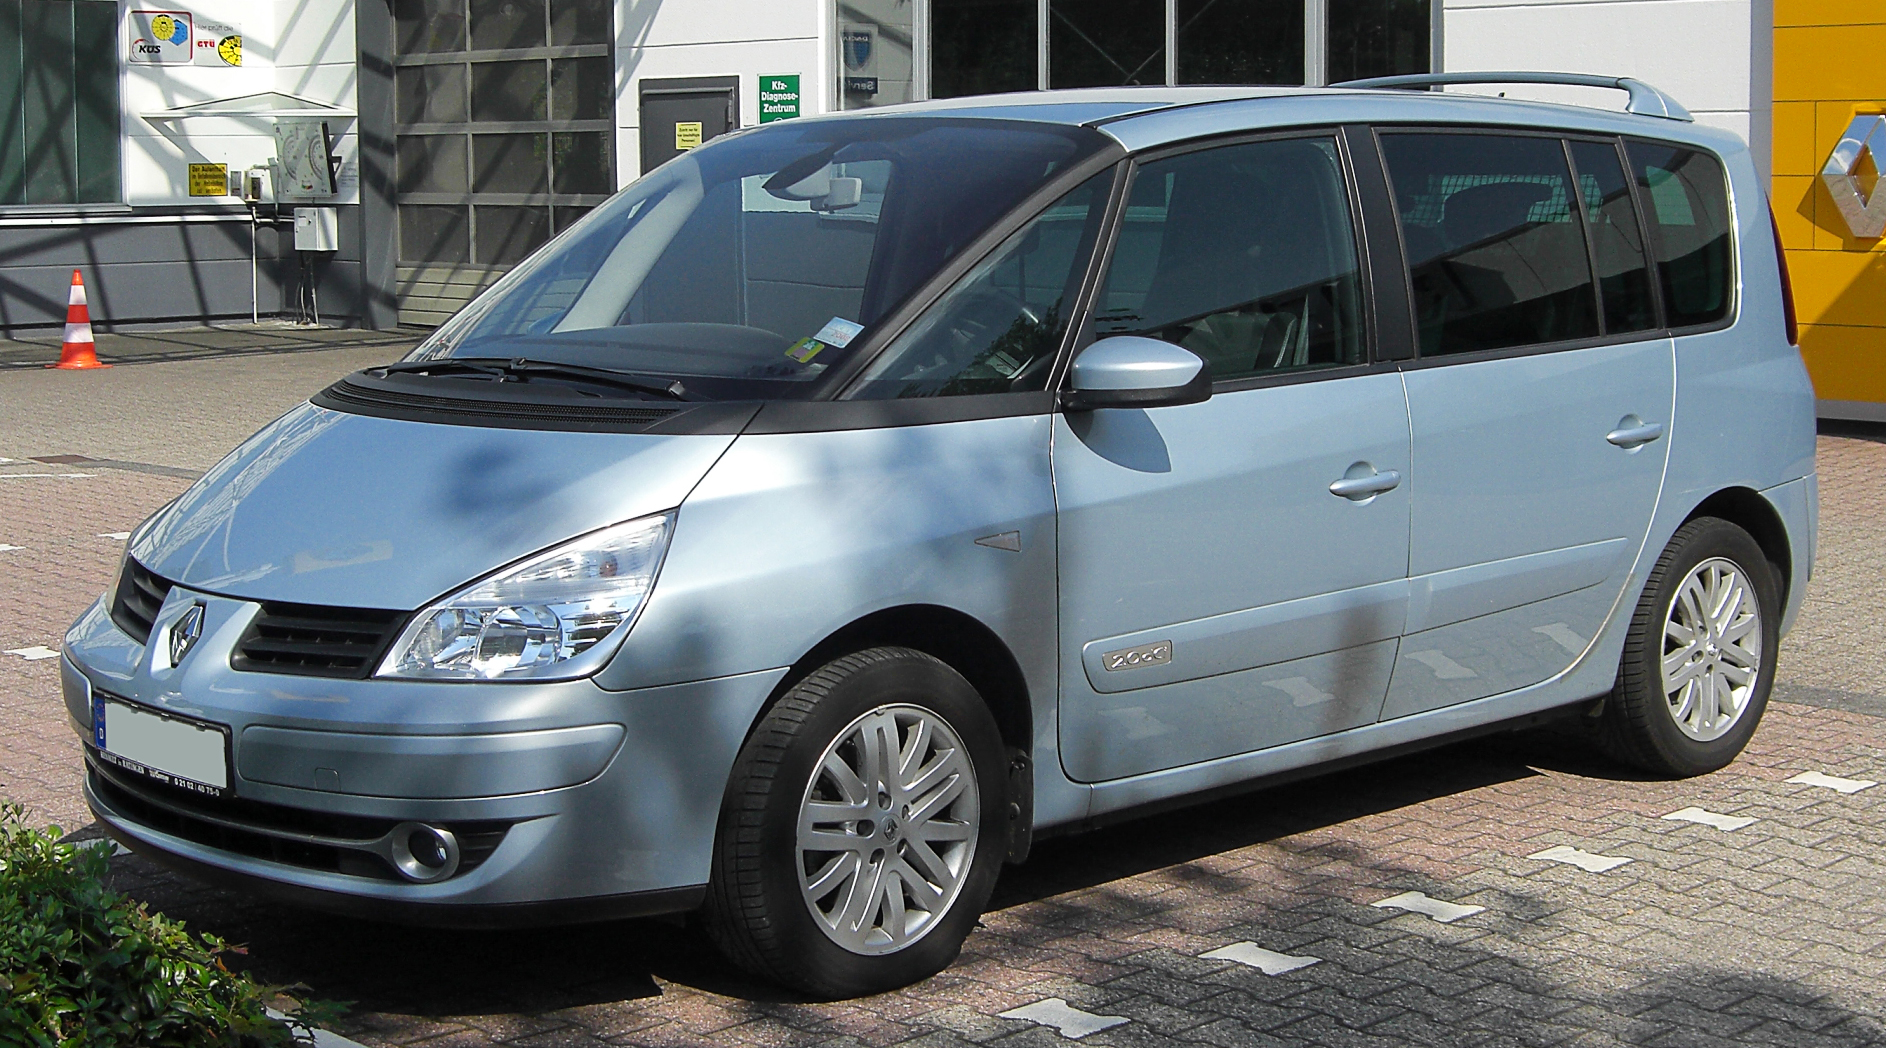 RENAULT ESPACE - Review and photos